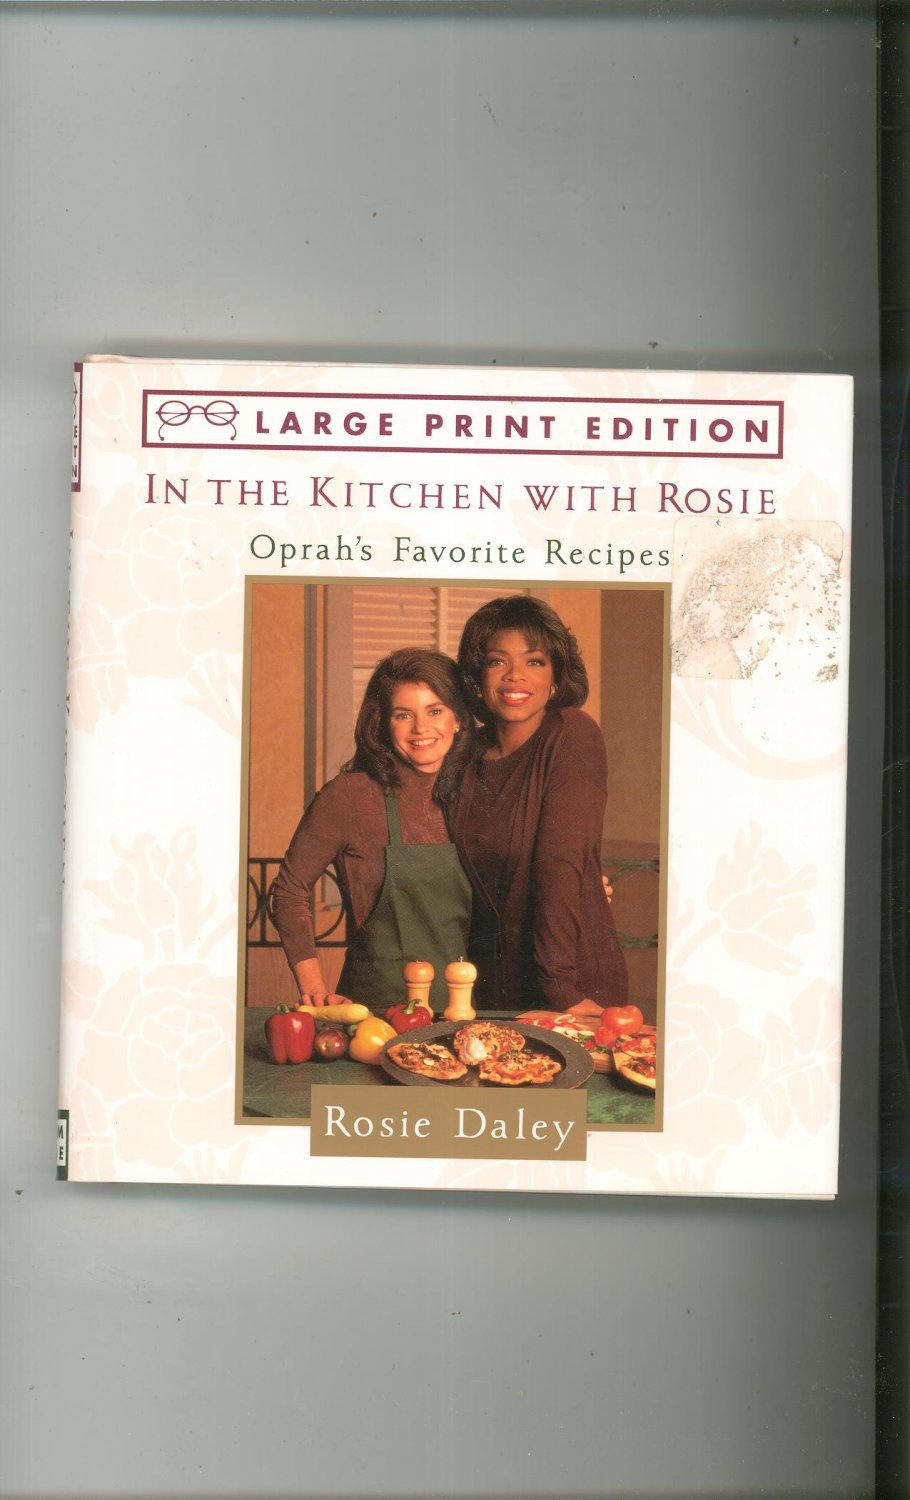 Large Print In The Kitchen With Rosie Cookbook By Rosie Daley Oprah's Recipes 0679440135